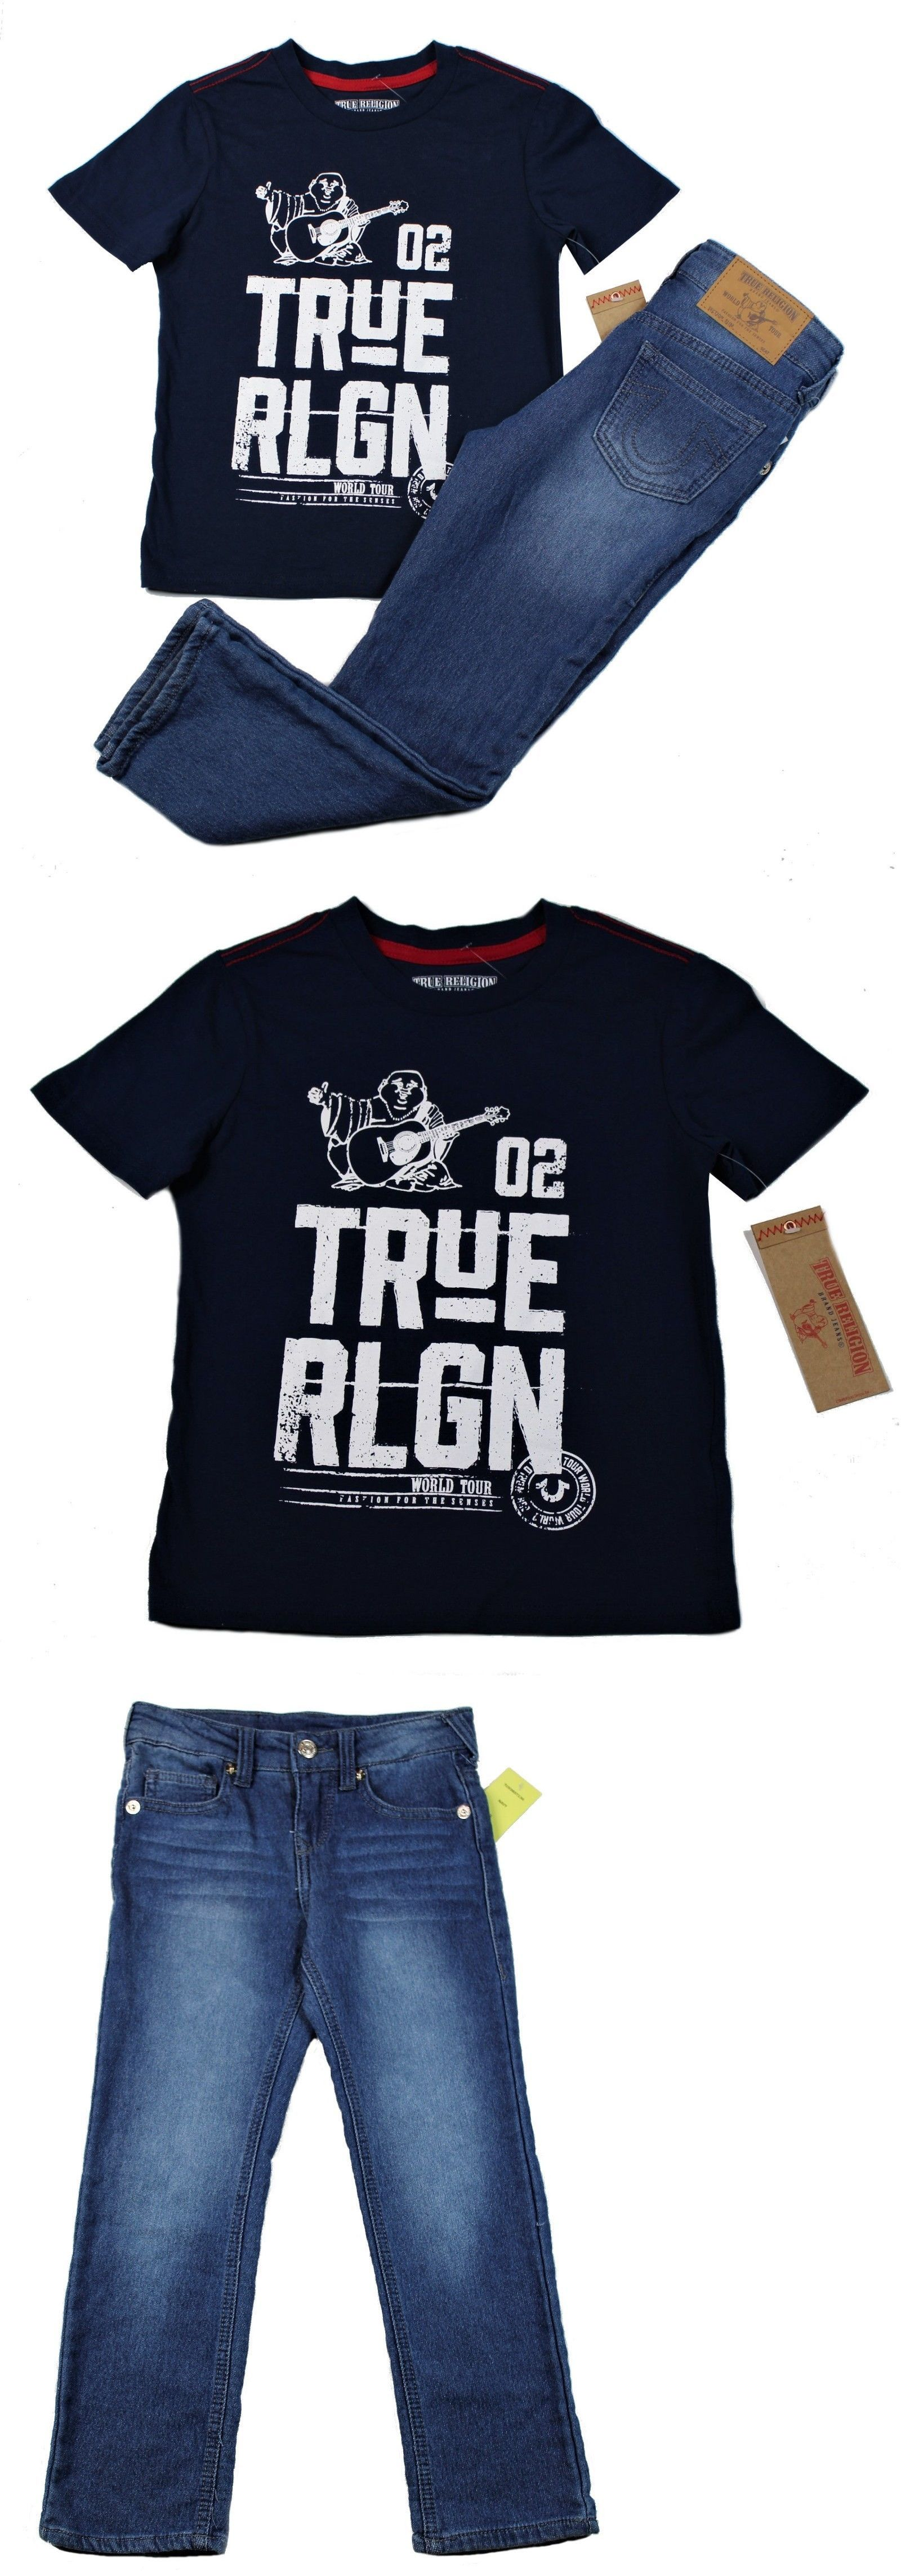 eb2d5ed9 Outfits and Sets 156790: New True Religion Little Boys 2 Piece Set Camo  Logo Tee And Jeans Navy Blue Size 6 -> BUY IT NOW ONLY: $34.79 on #eBay  #outfits ...